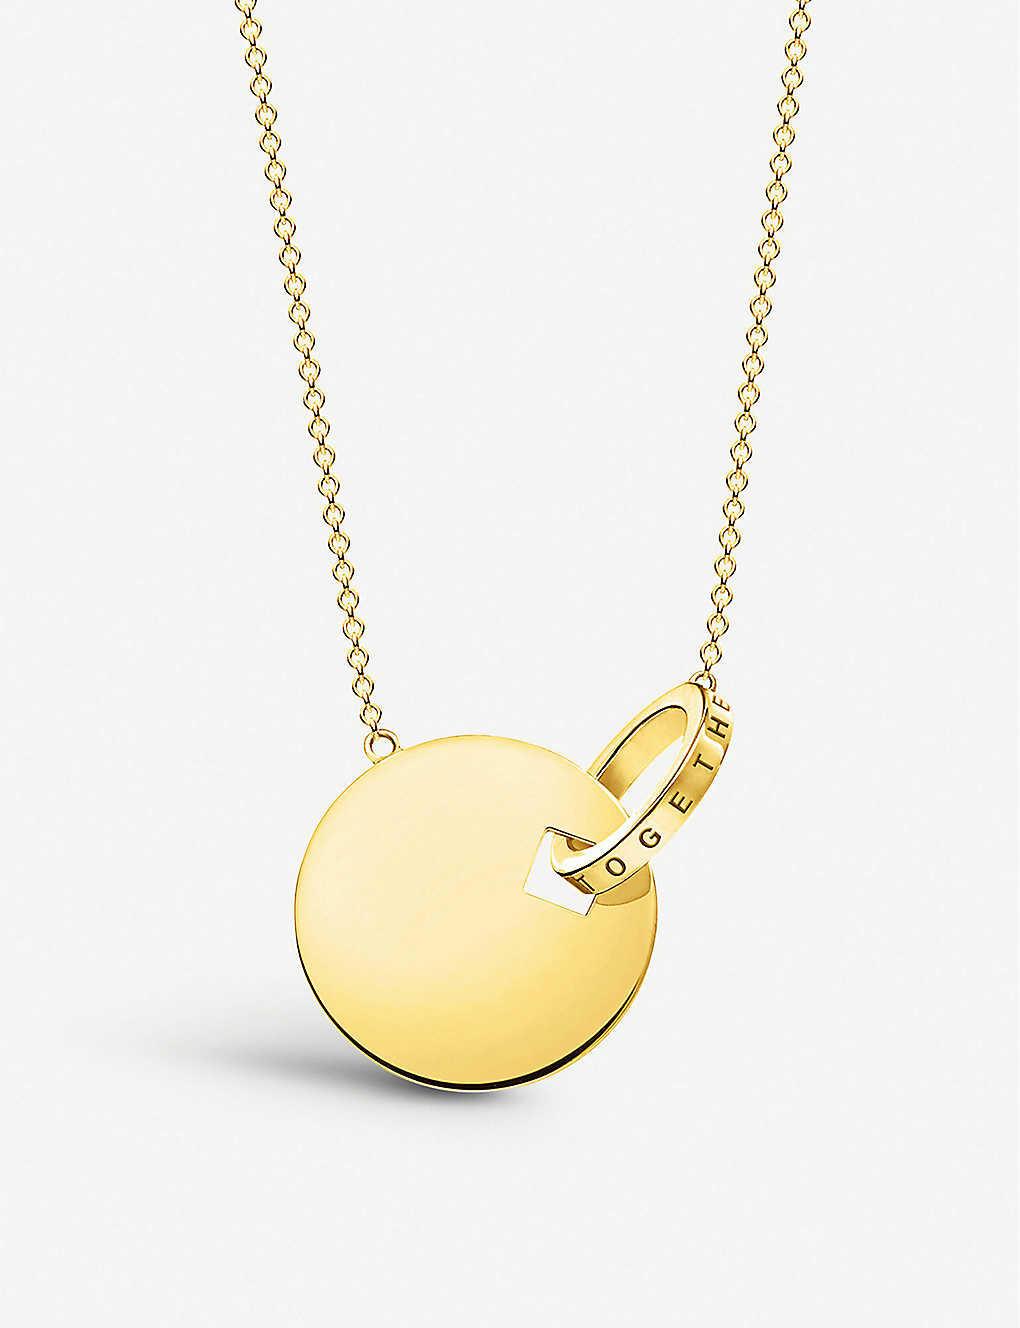 THOMAS SABO: Together Forever 18ct yellow gold-plated necklace